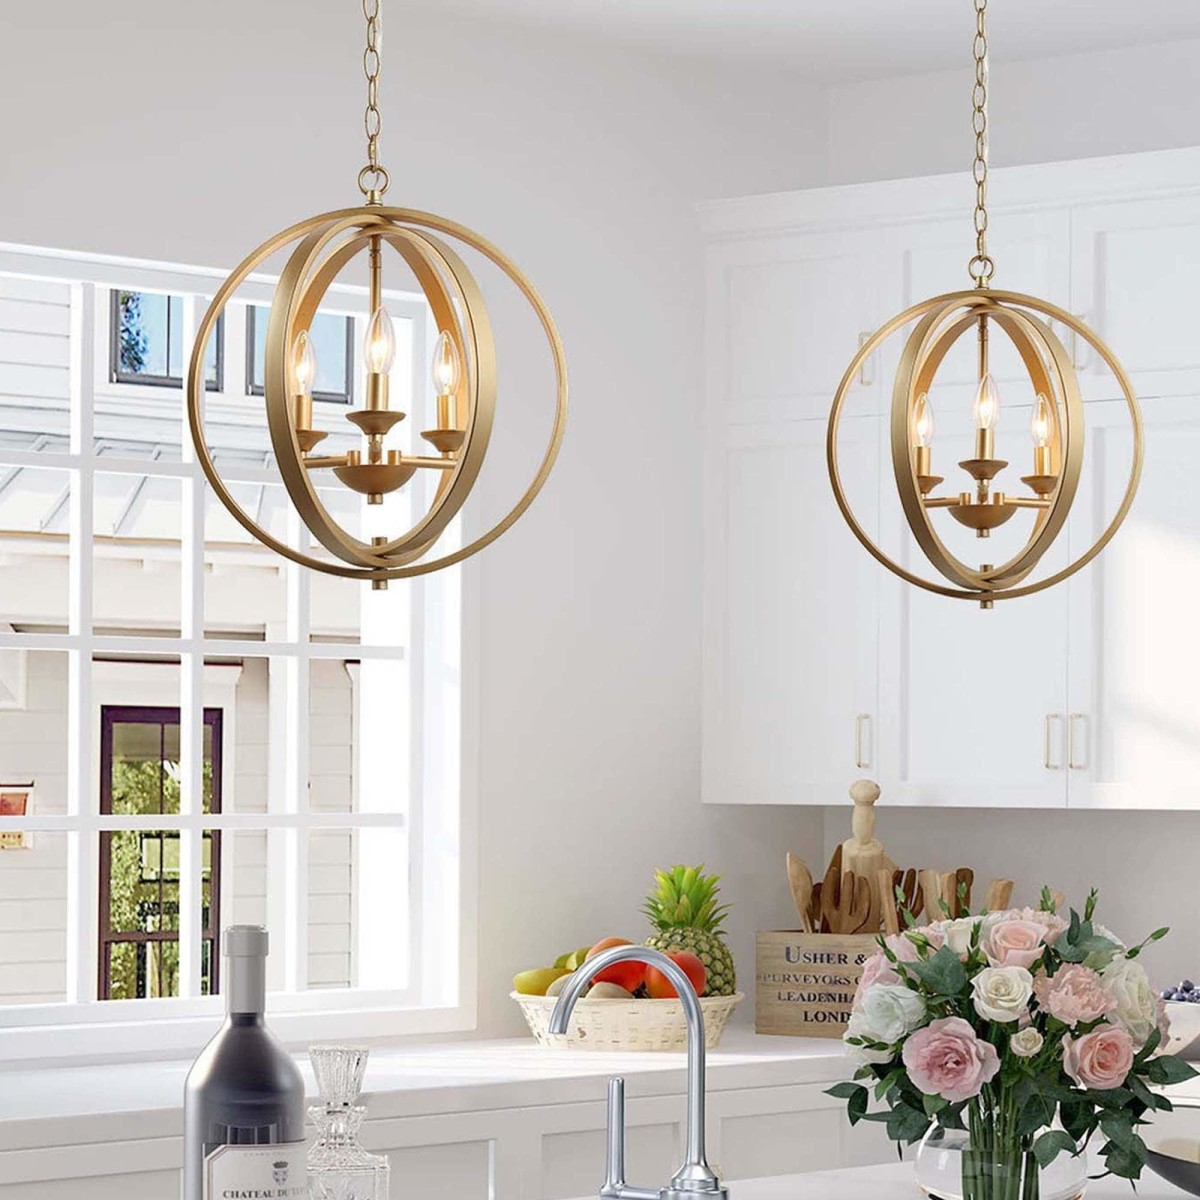 Orb circular fixtures are the gold ceiling lights in the kitchen.